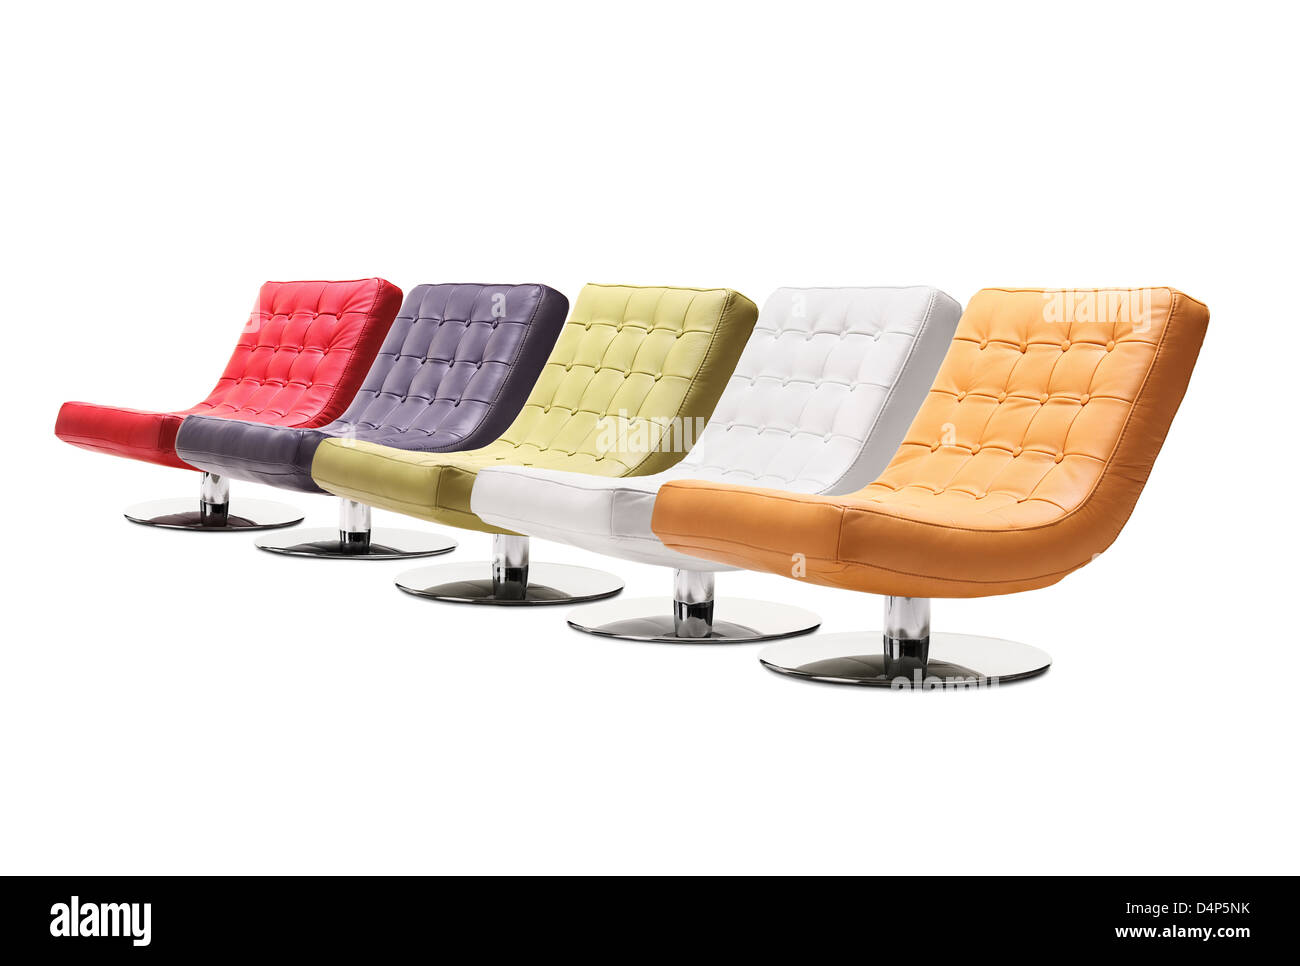 Studio Shot Of Colorful Leather Armchairs Isolated Against White Background